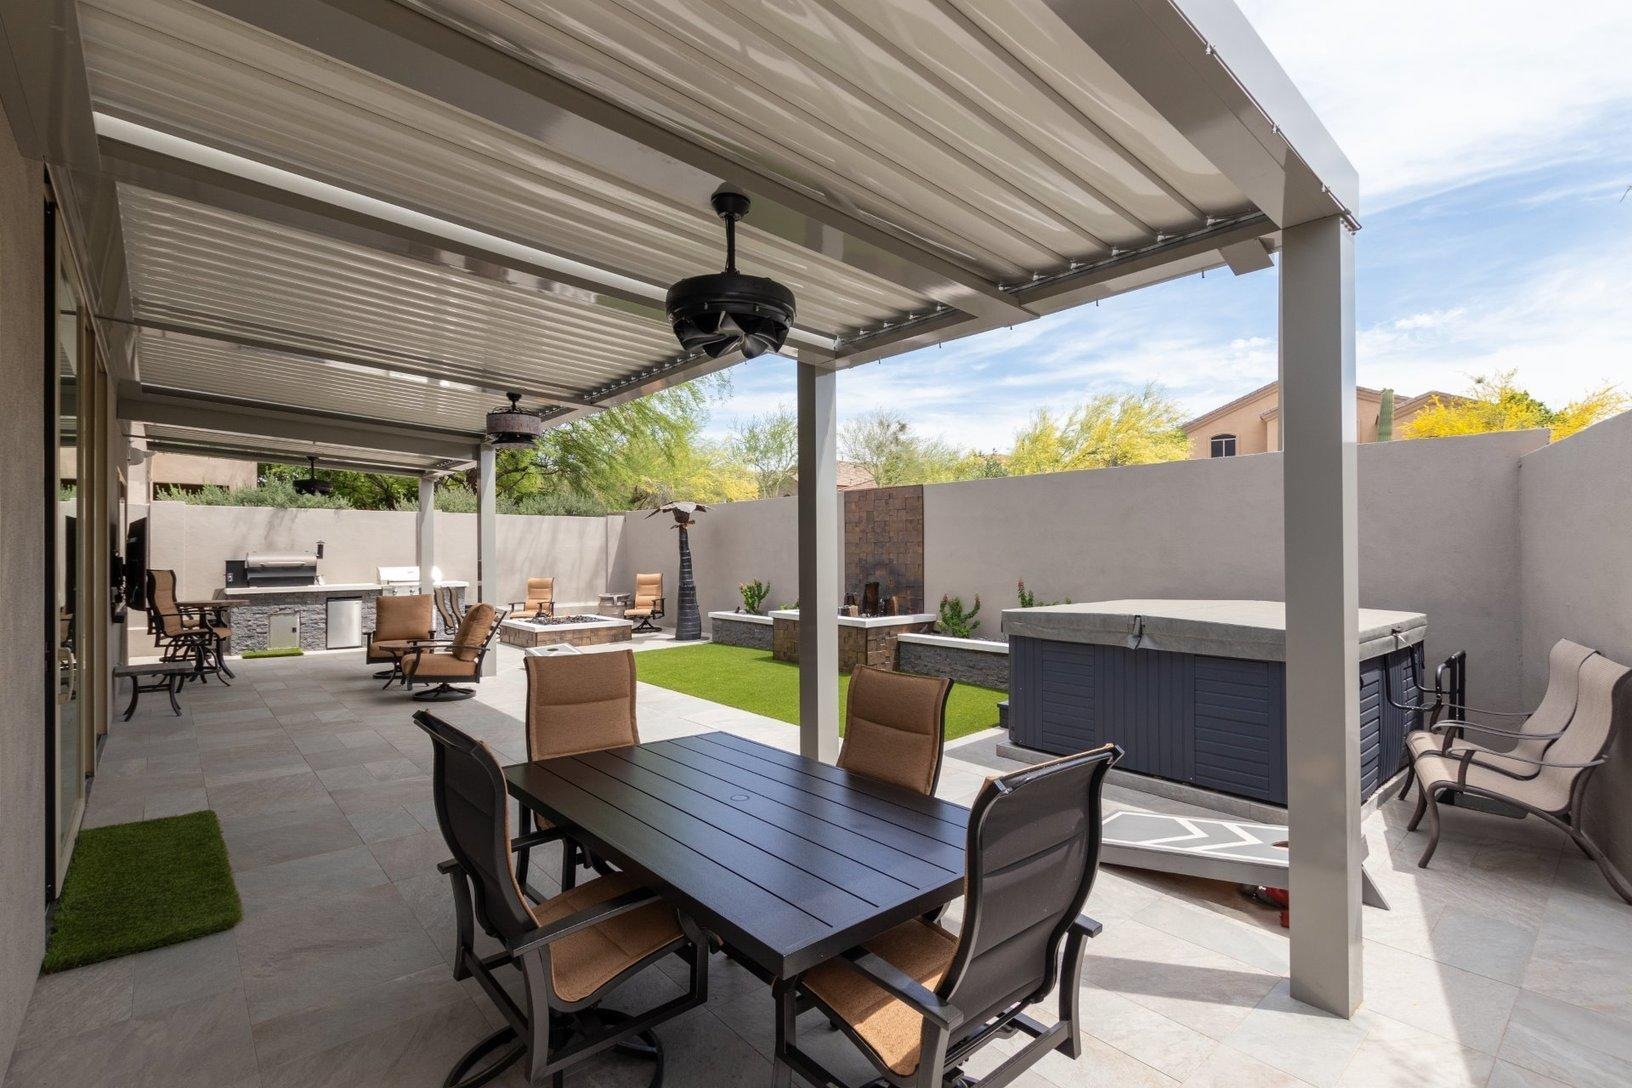 Remodeling Back Yard Remodel In Scottsdale 85255 Patio With Closed Louvers